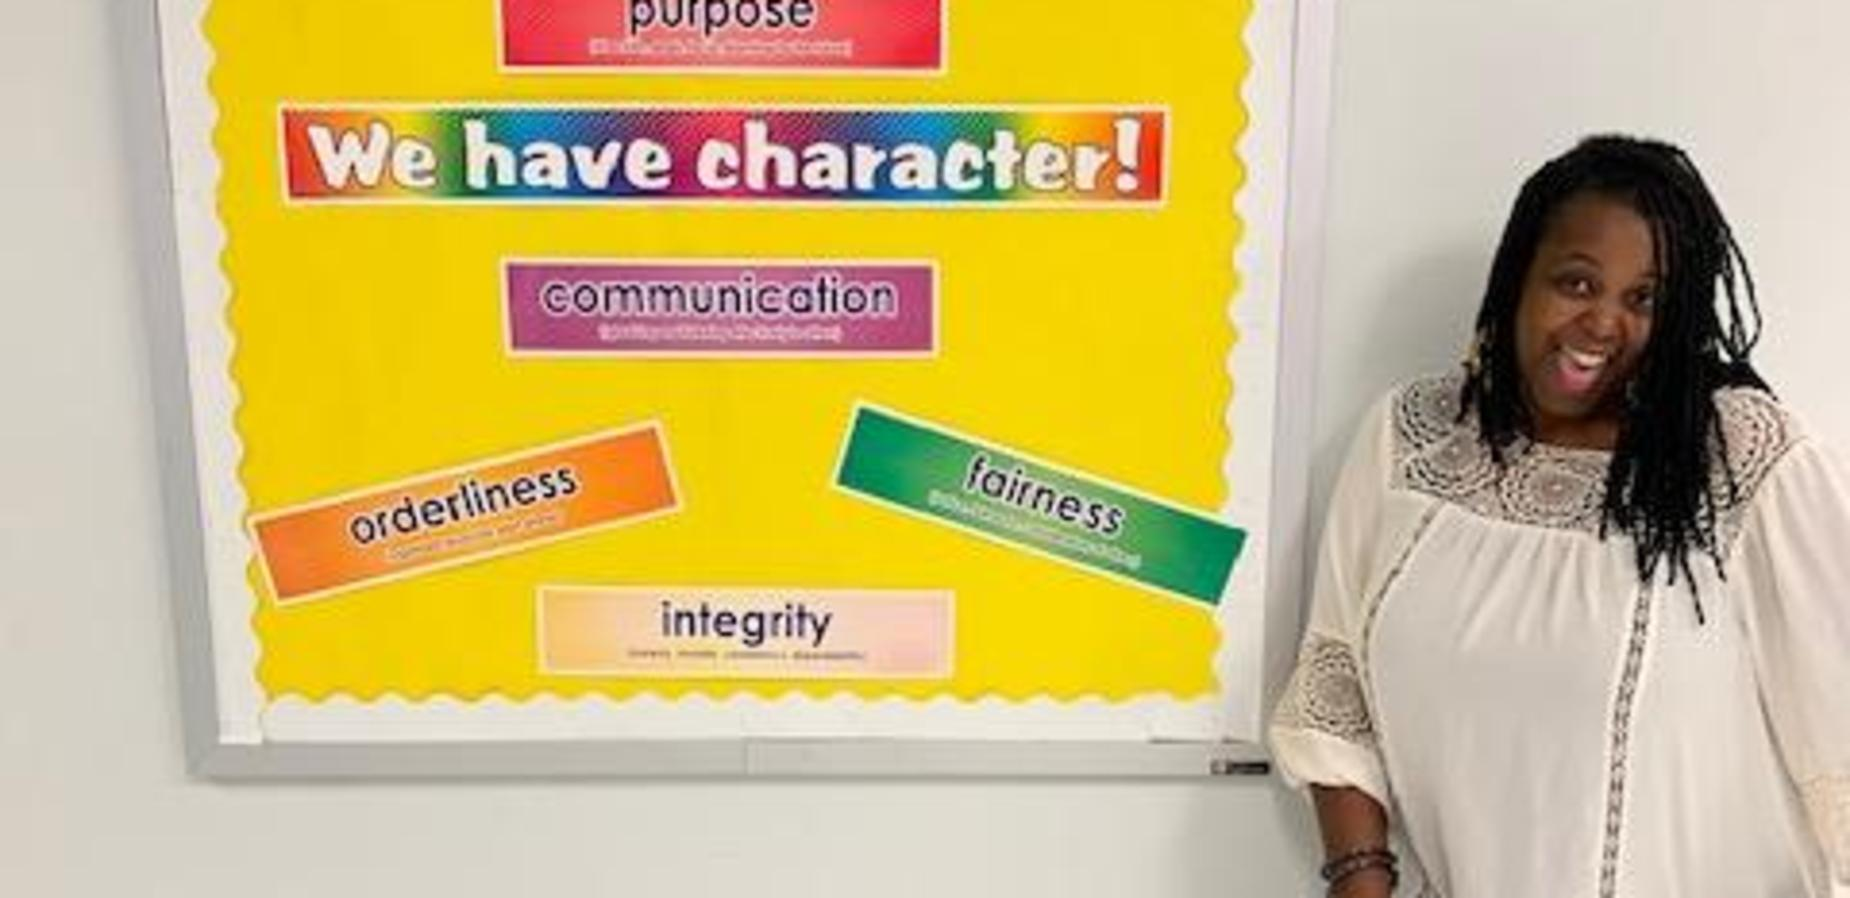 Ms. Gratic is excited about character building!